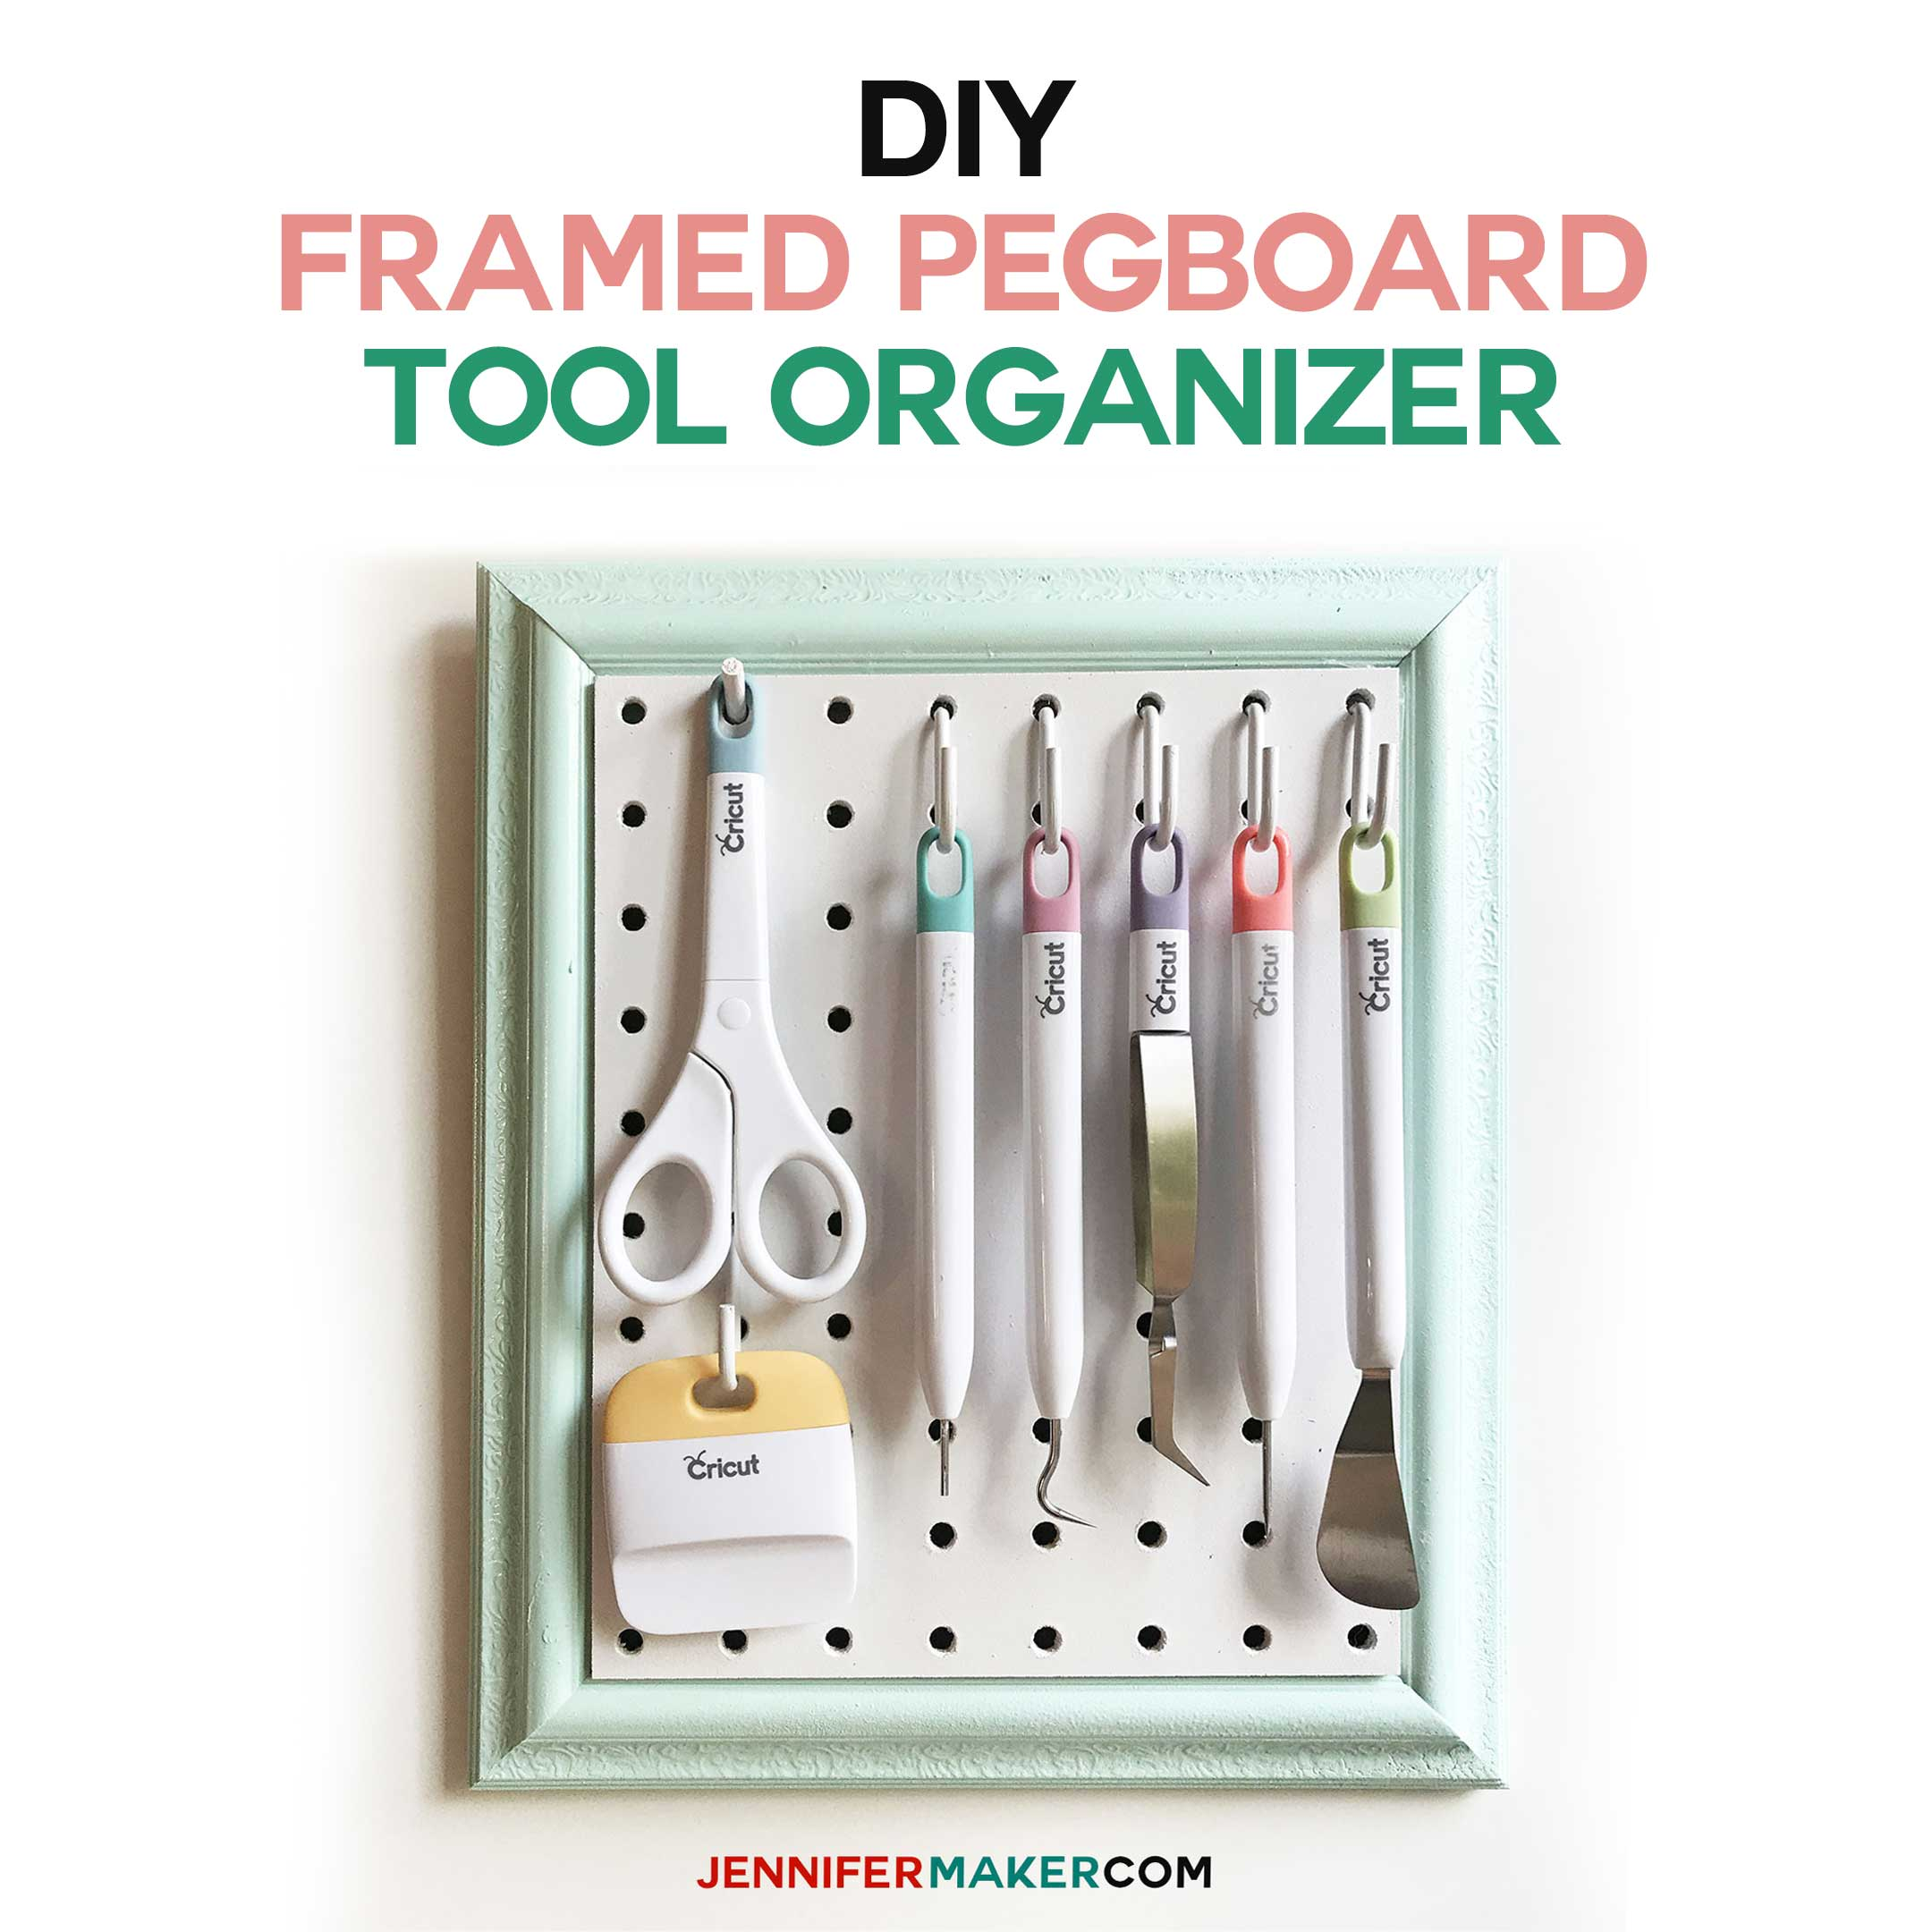 Diy framed pegboard craft organizer for tools jennifer maker framed pegboard craft tool organizer tutorial how to make a diy pegboard frame for your publicscrutiny Images